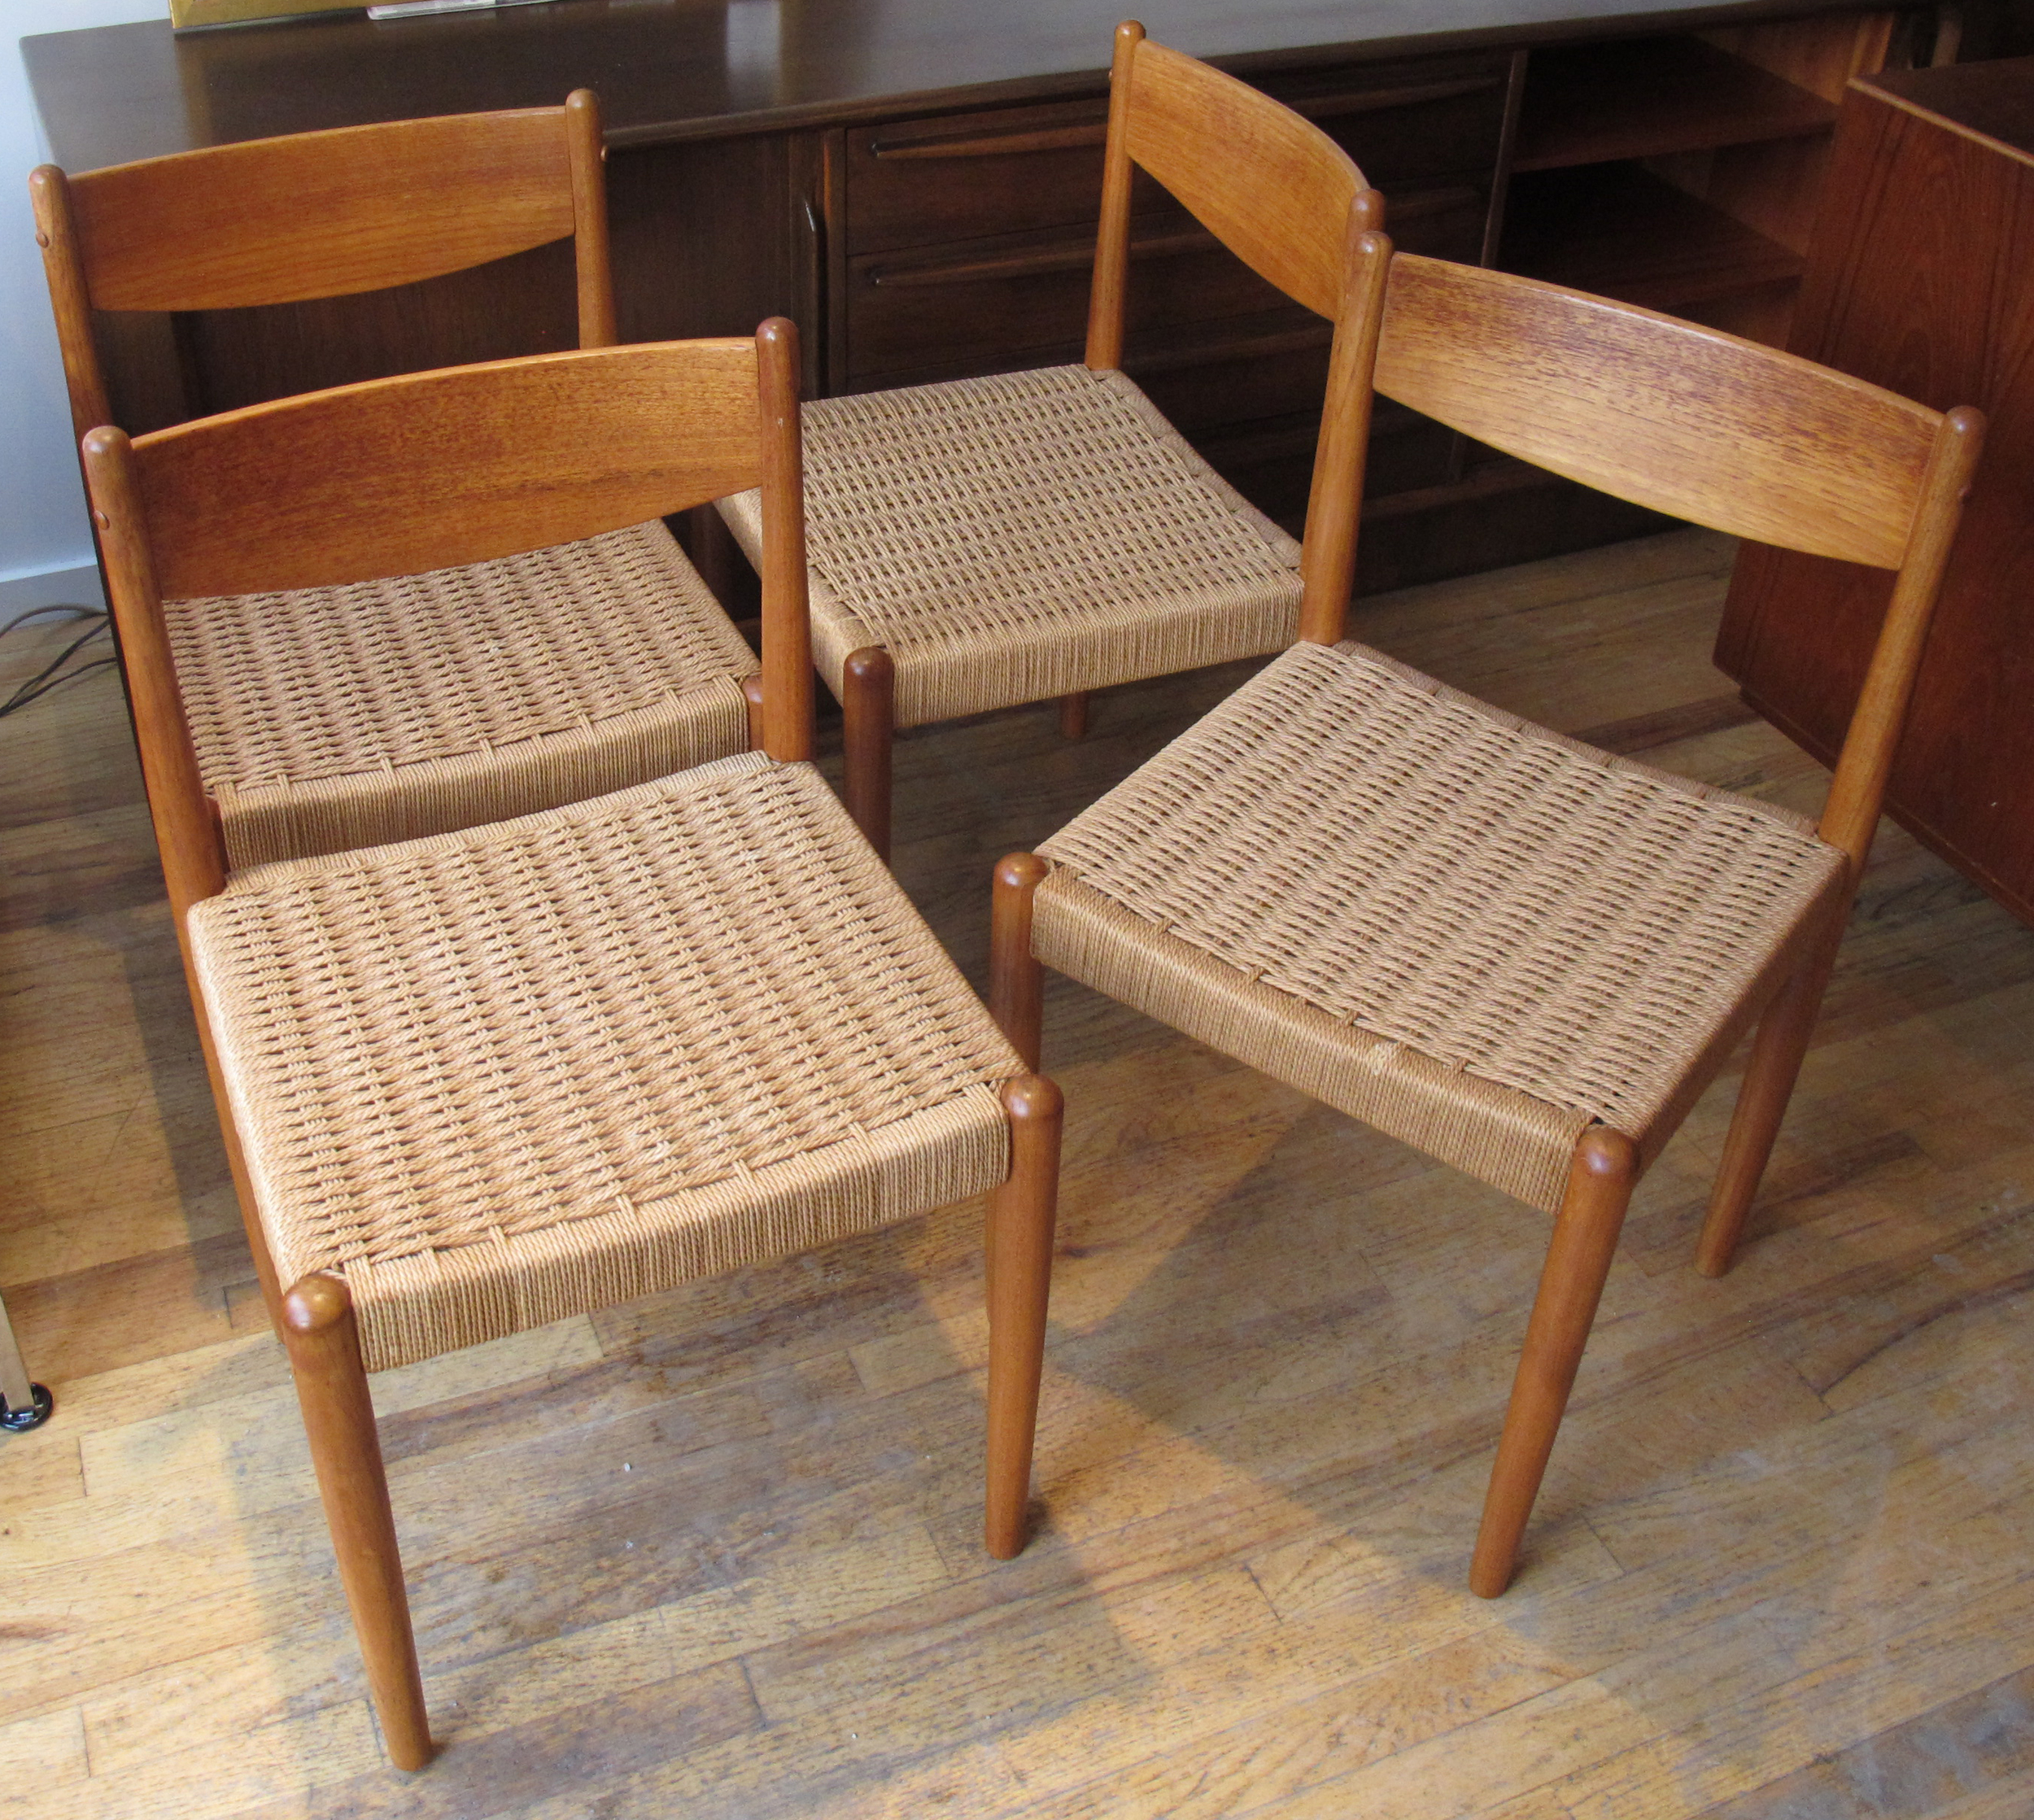 DANISH MODERN ROPE CHAIRS AFTER POUL VOLTHER